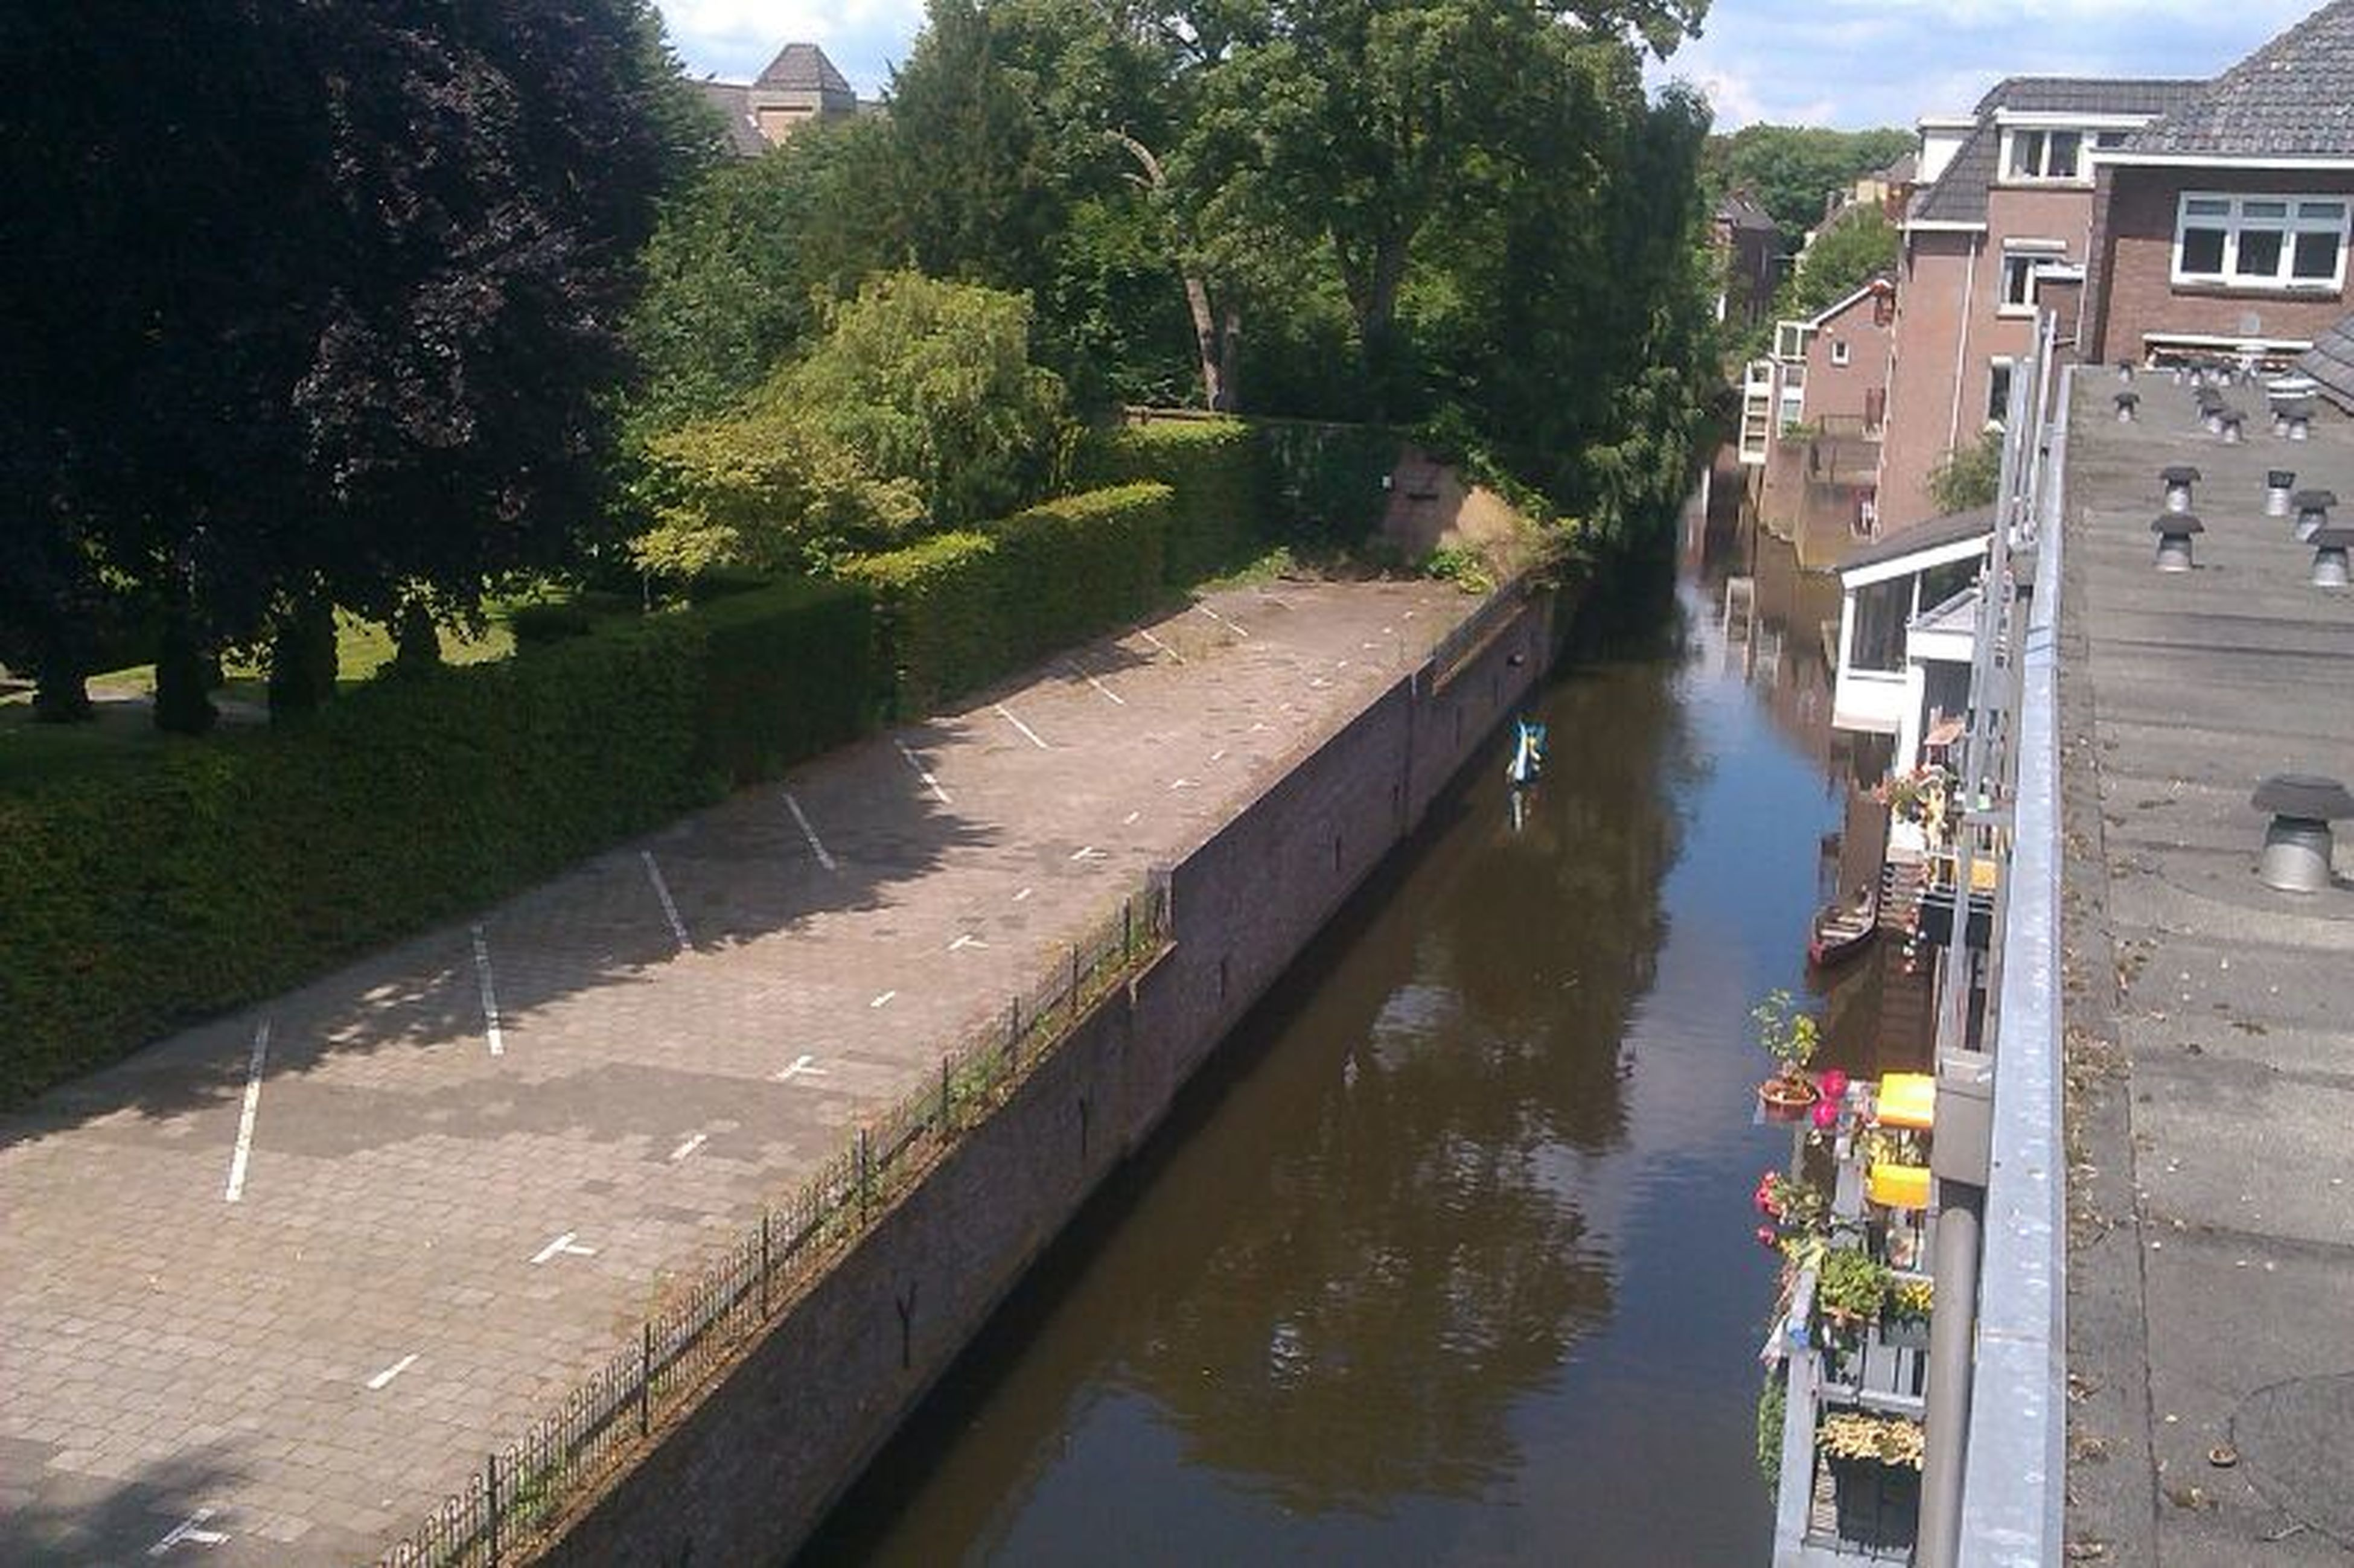 Narrow canals on a sunny day in Den Bosch